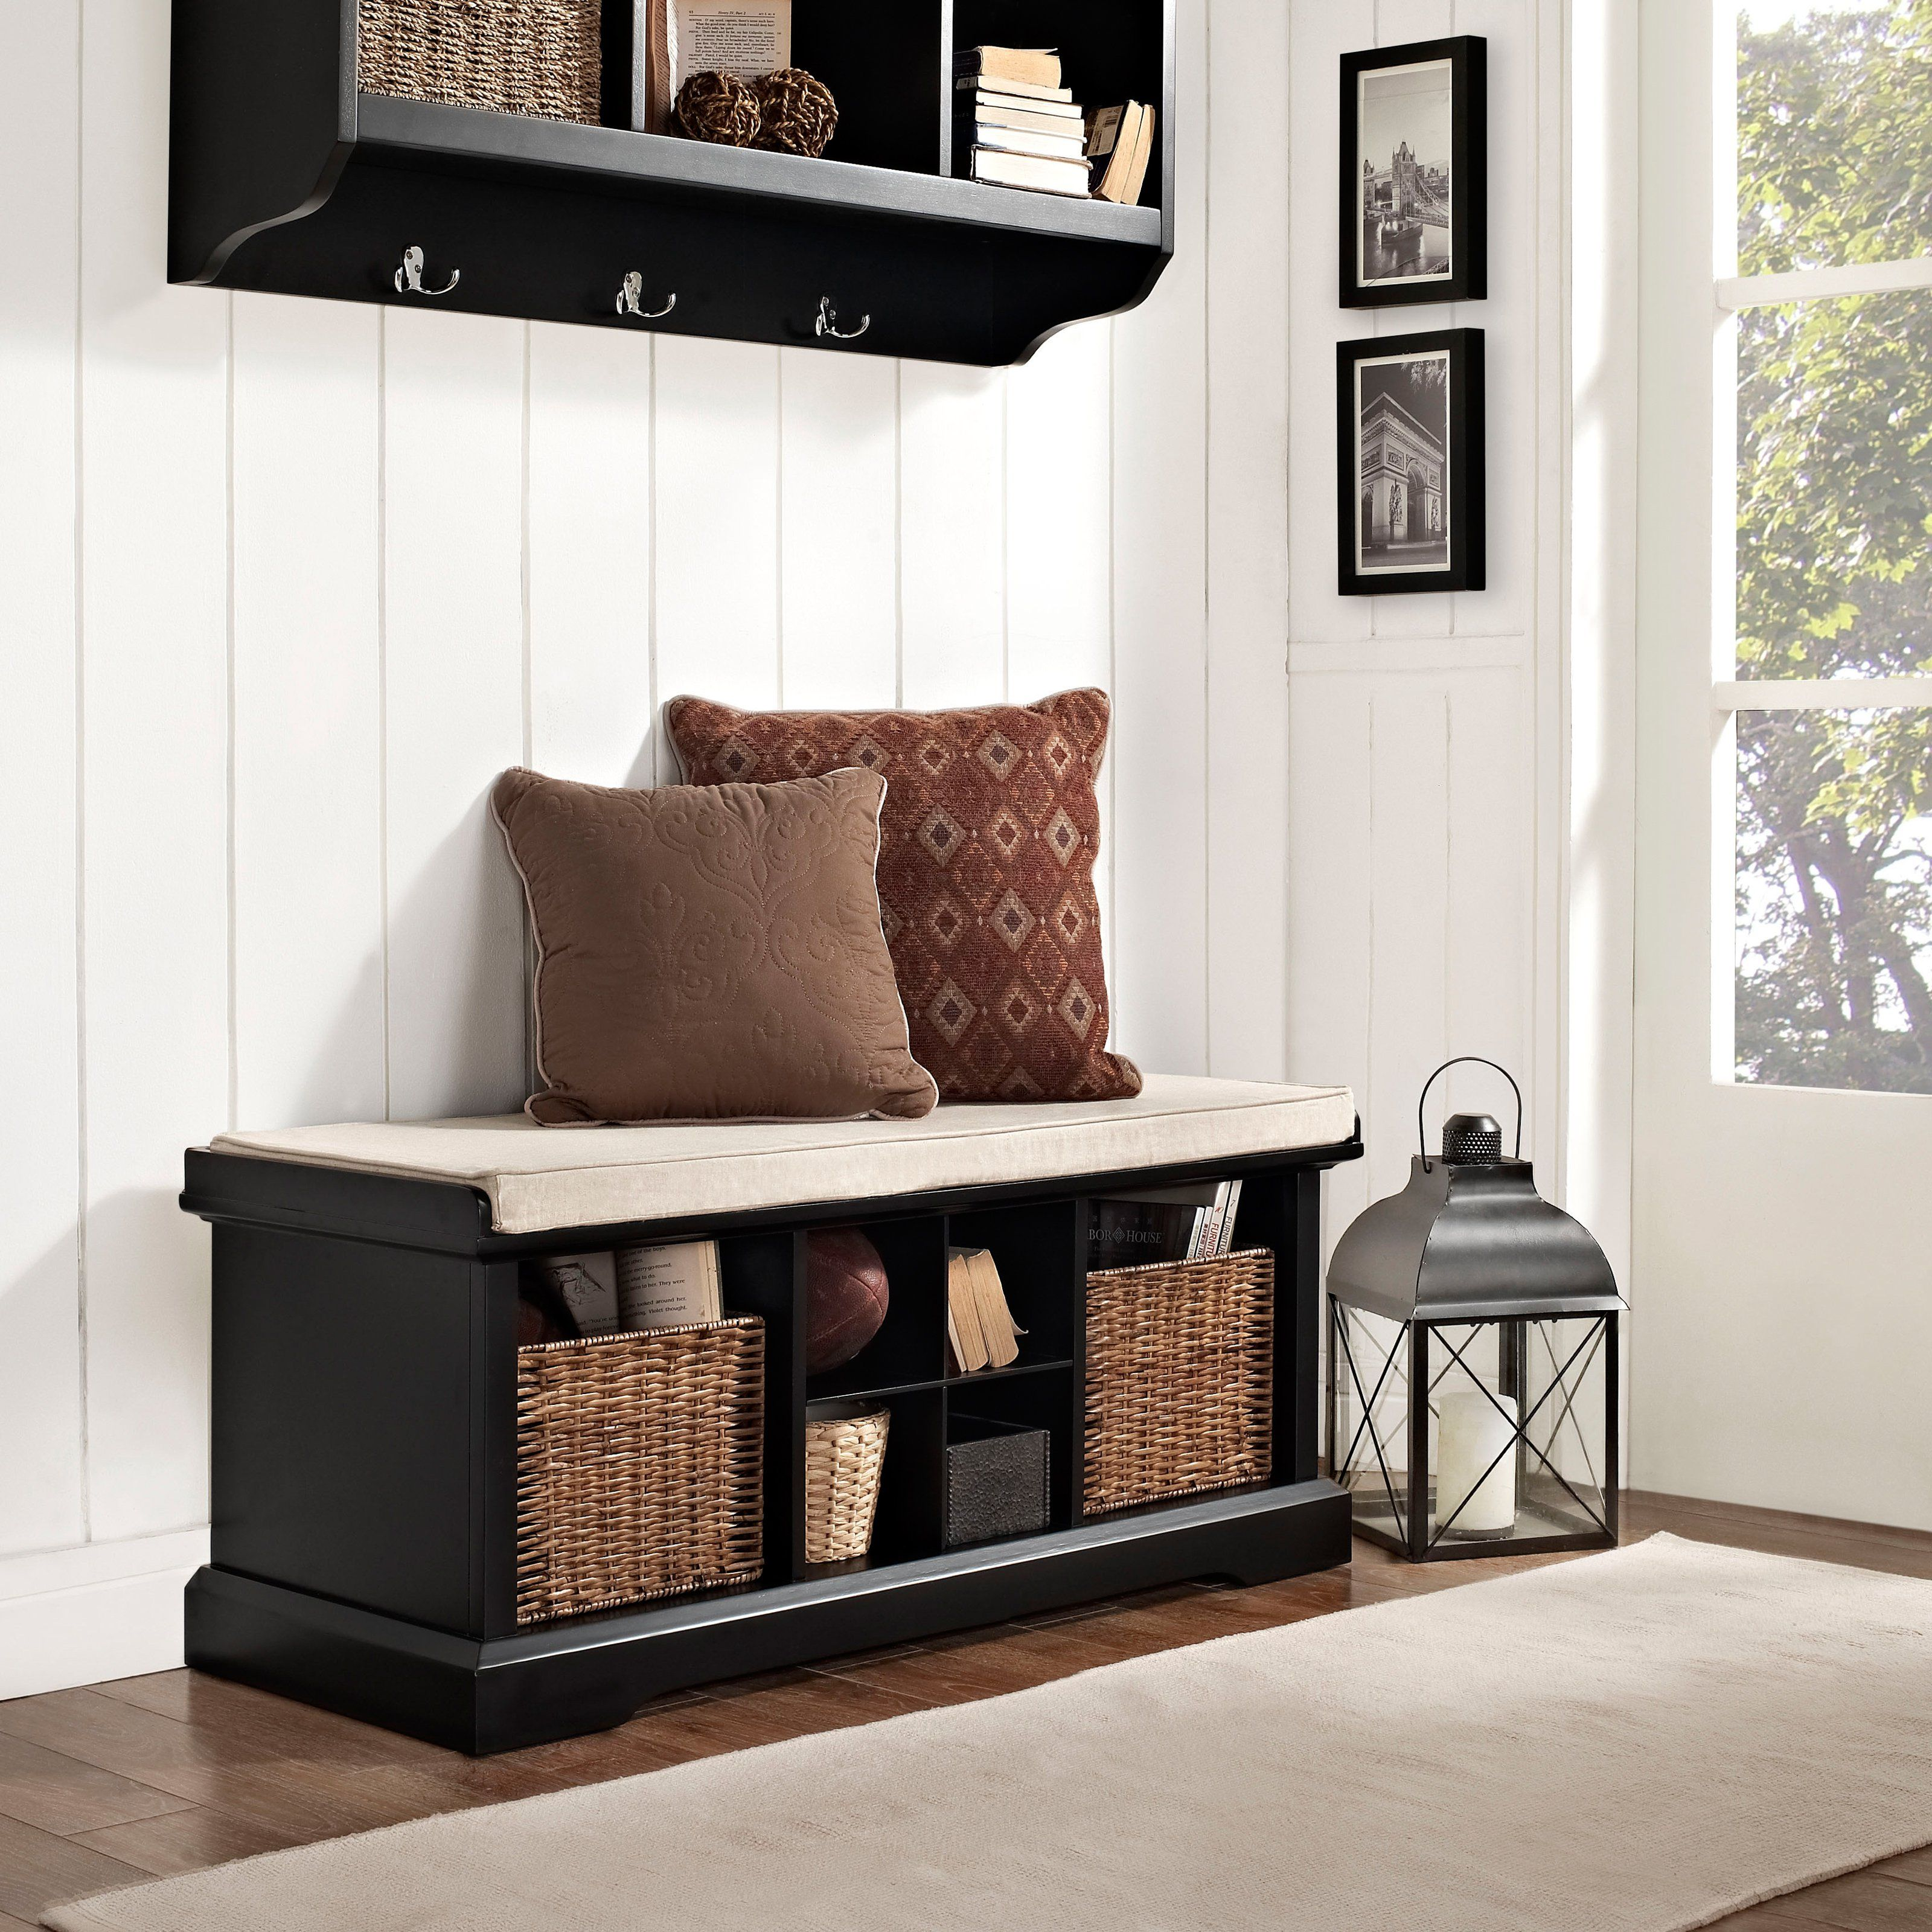 Entryway Storage Bench Large And Small Cubbies For Shoes And Baskets With Images Living Room Bench Entryway Bench Storage Entryway Storage